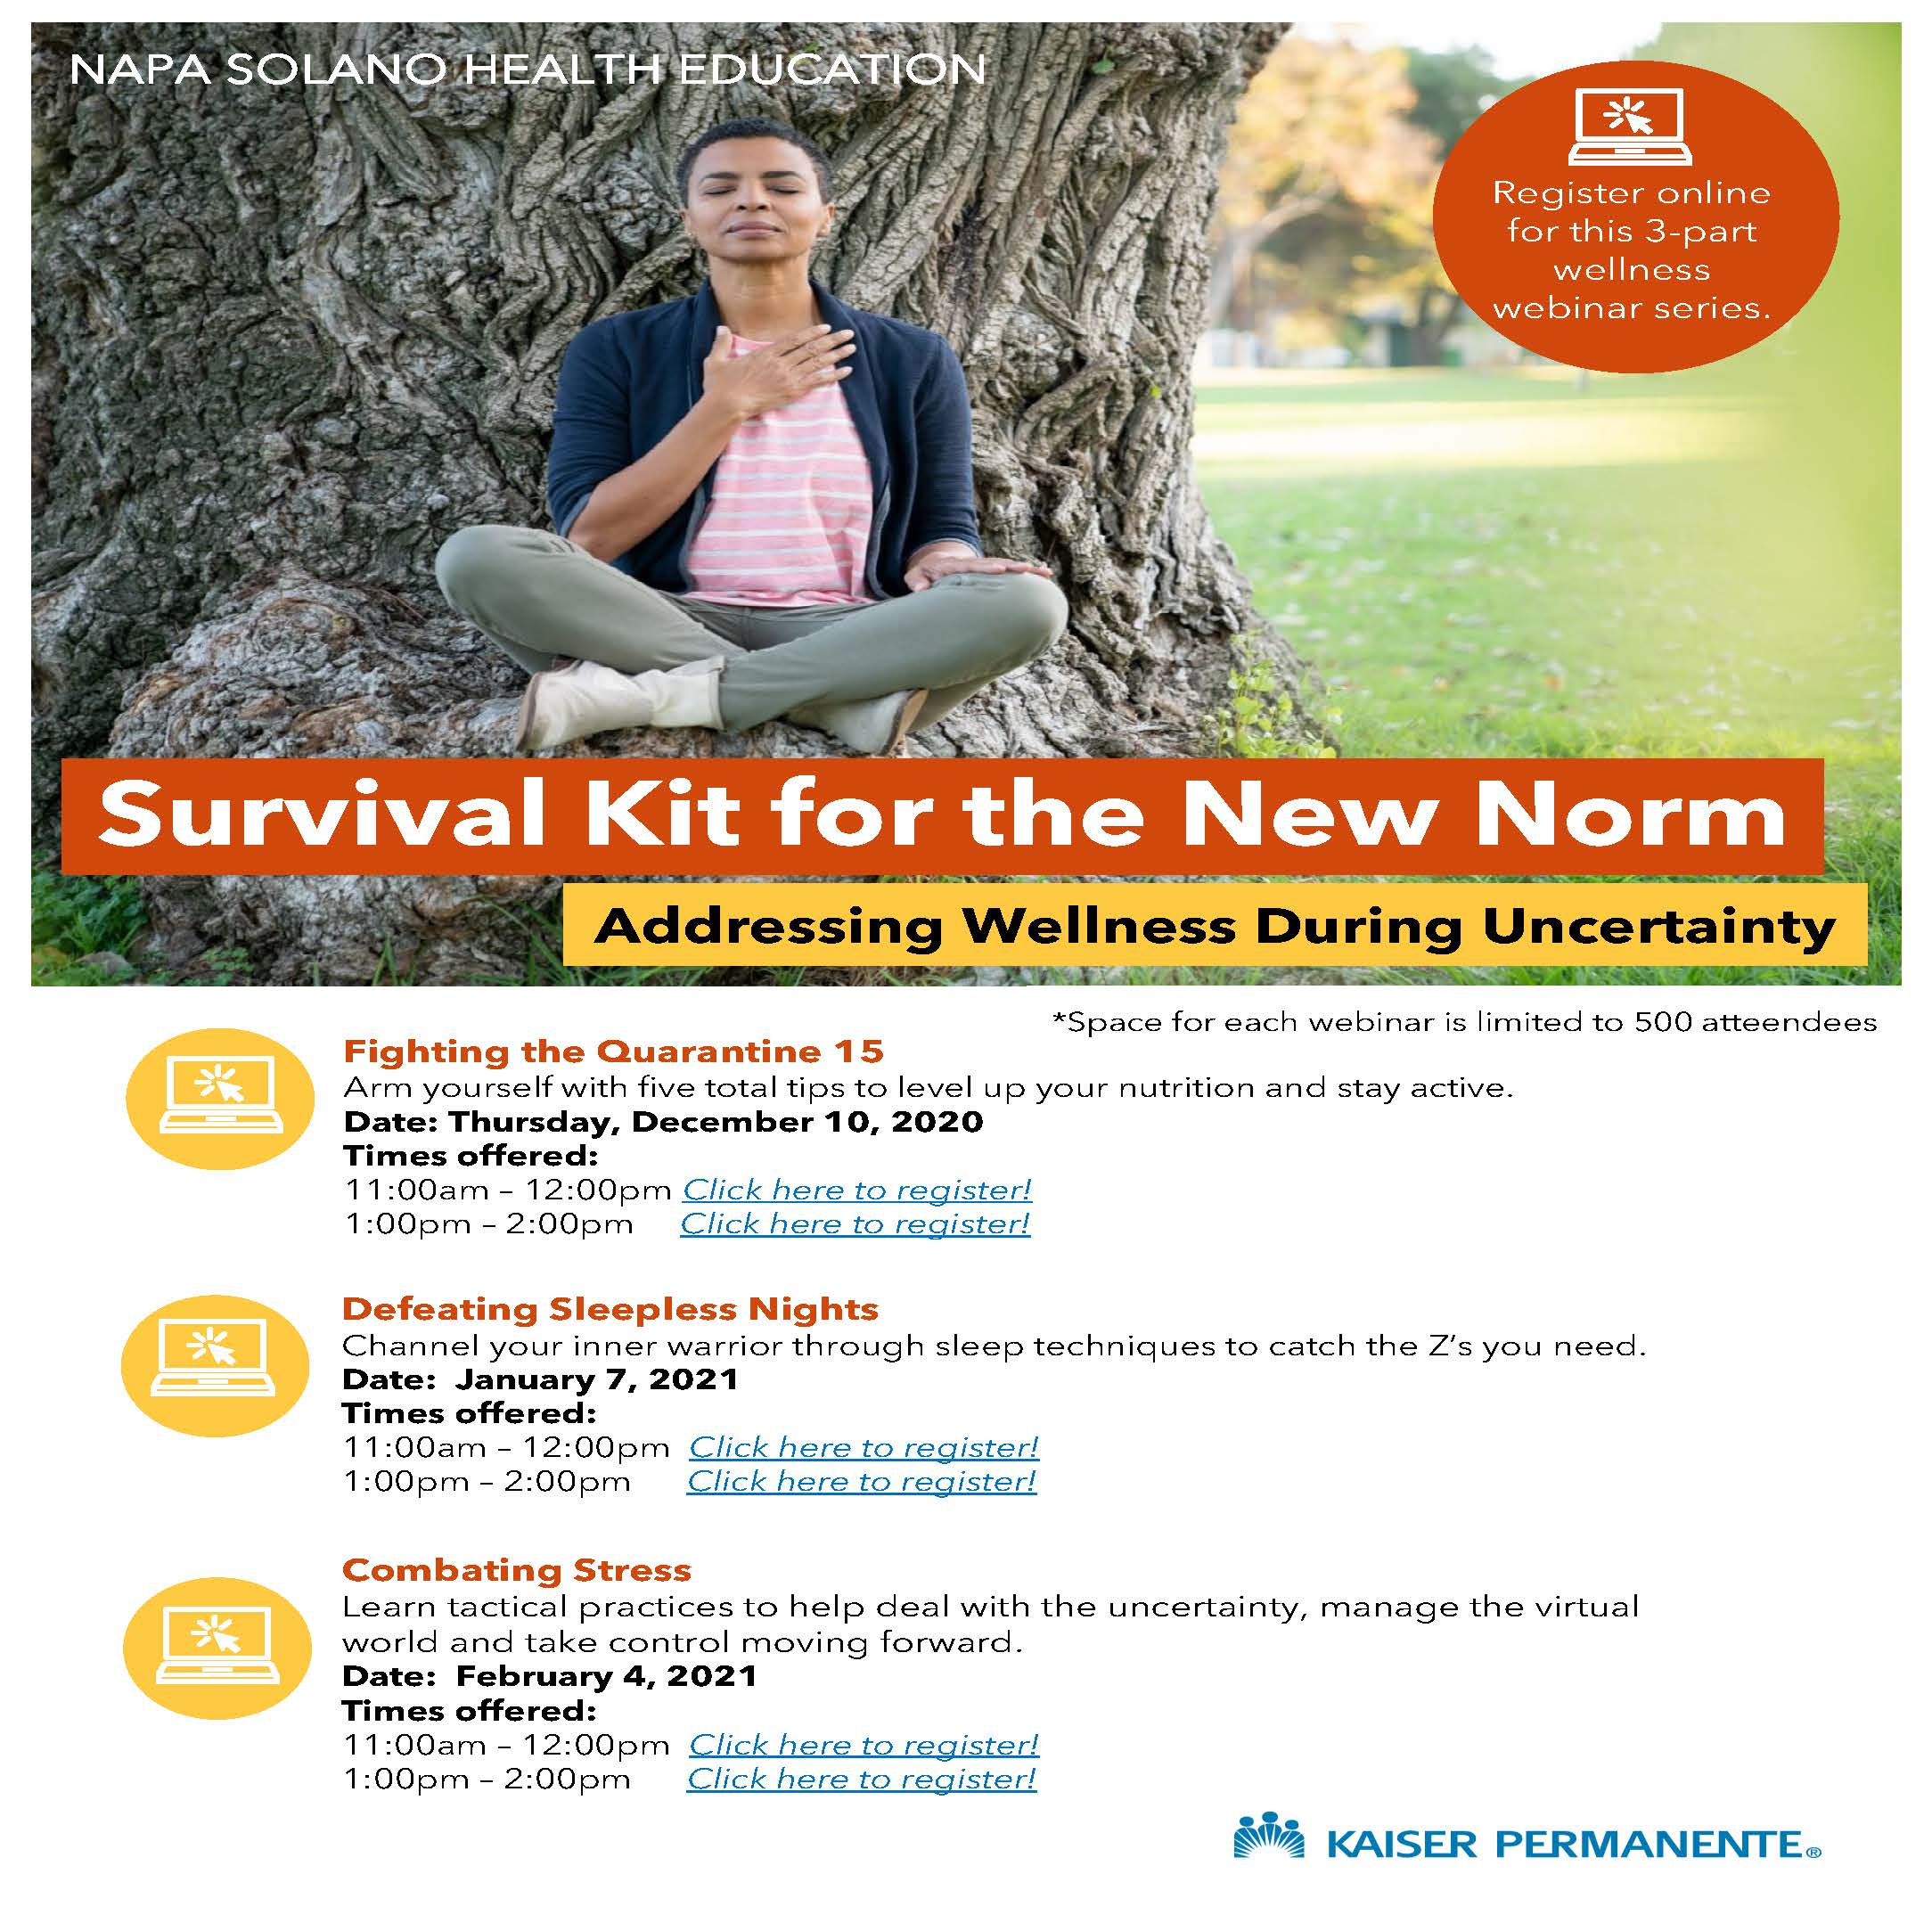 Survival Kit for the New Norm  blog featured image